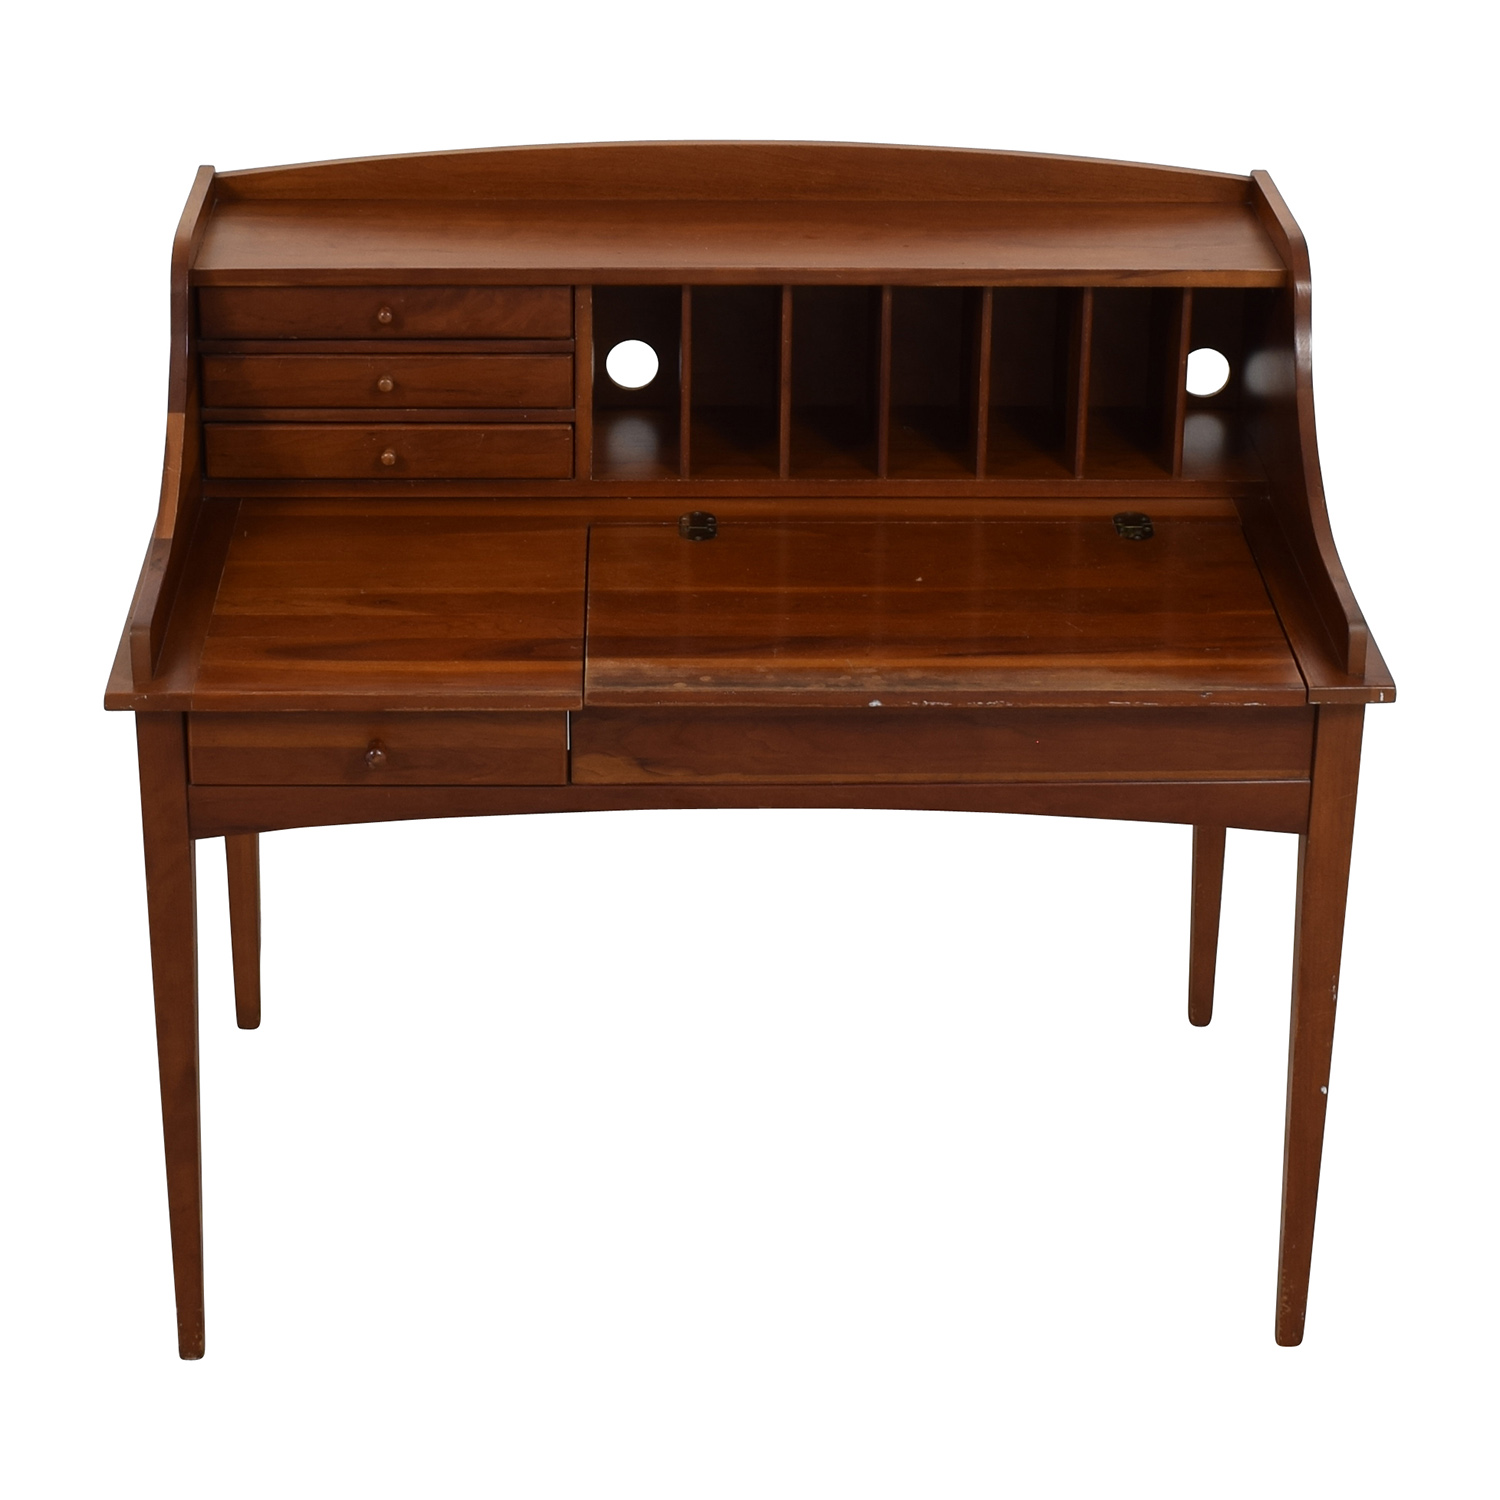 ... Stanley Furniture Stanley Furniture Cambridge Antique Secretary Desk  discount ... - 74% OFF - Stanley Furniture Stanley Furniture Cambridge Antique